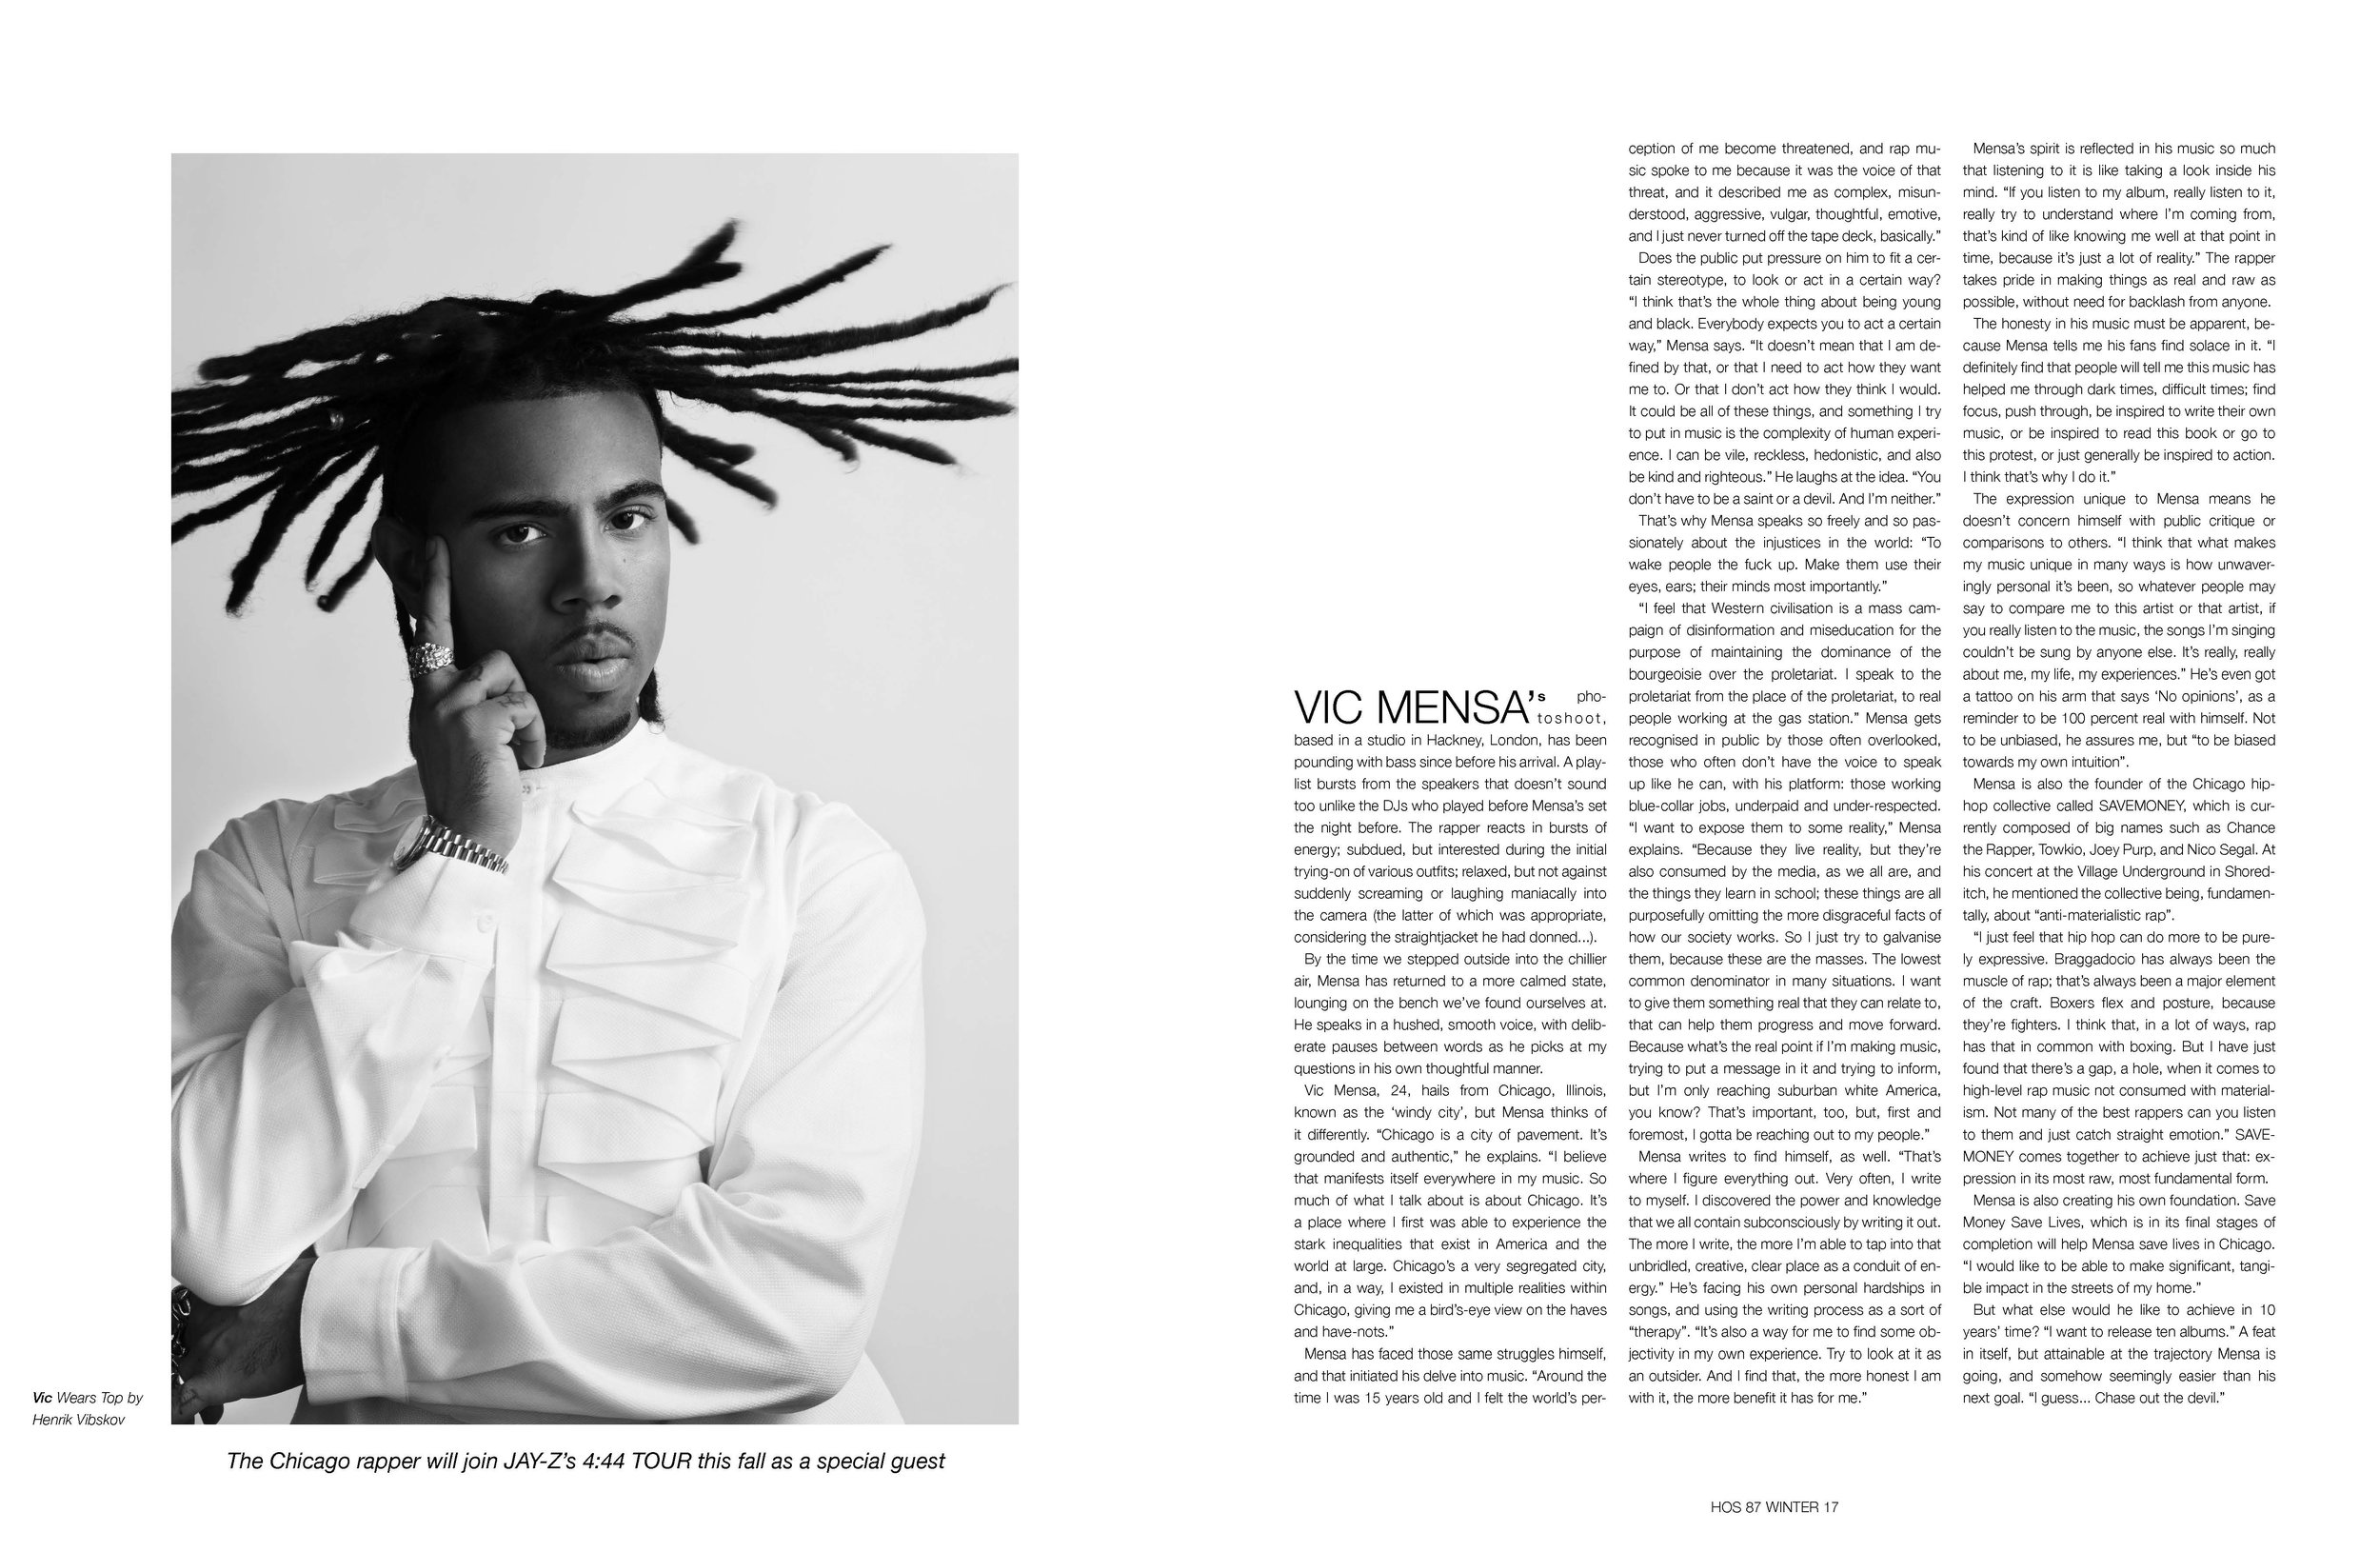 Vic Mensa - Interview - 'I feel that Western civilisation is a mass campaign of disinformation and miseducation for the purpose of maintaining the dominance of the bourgeoisie over the proletariat.'(Photographer: NIKLAS HAZE // Stylist: KIRUBEL BELAY // Hair and make-up artist: REVE RYU // Production: LILIAN BÜECHNER)